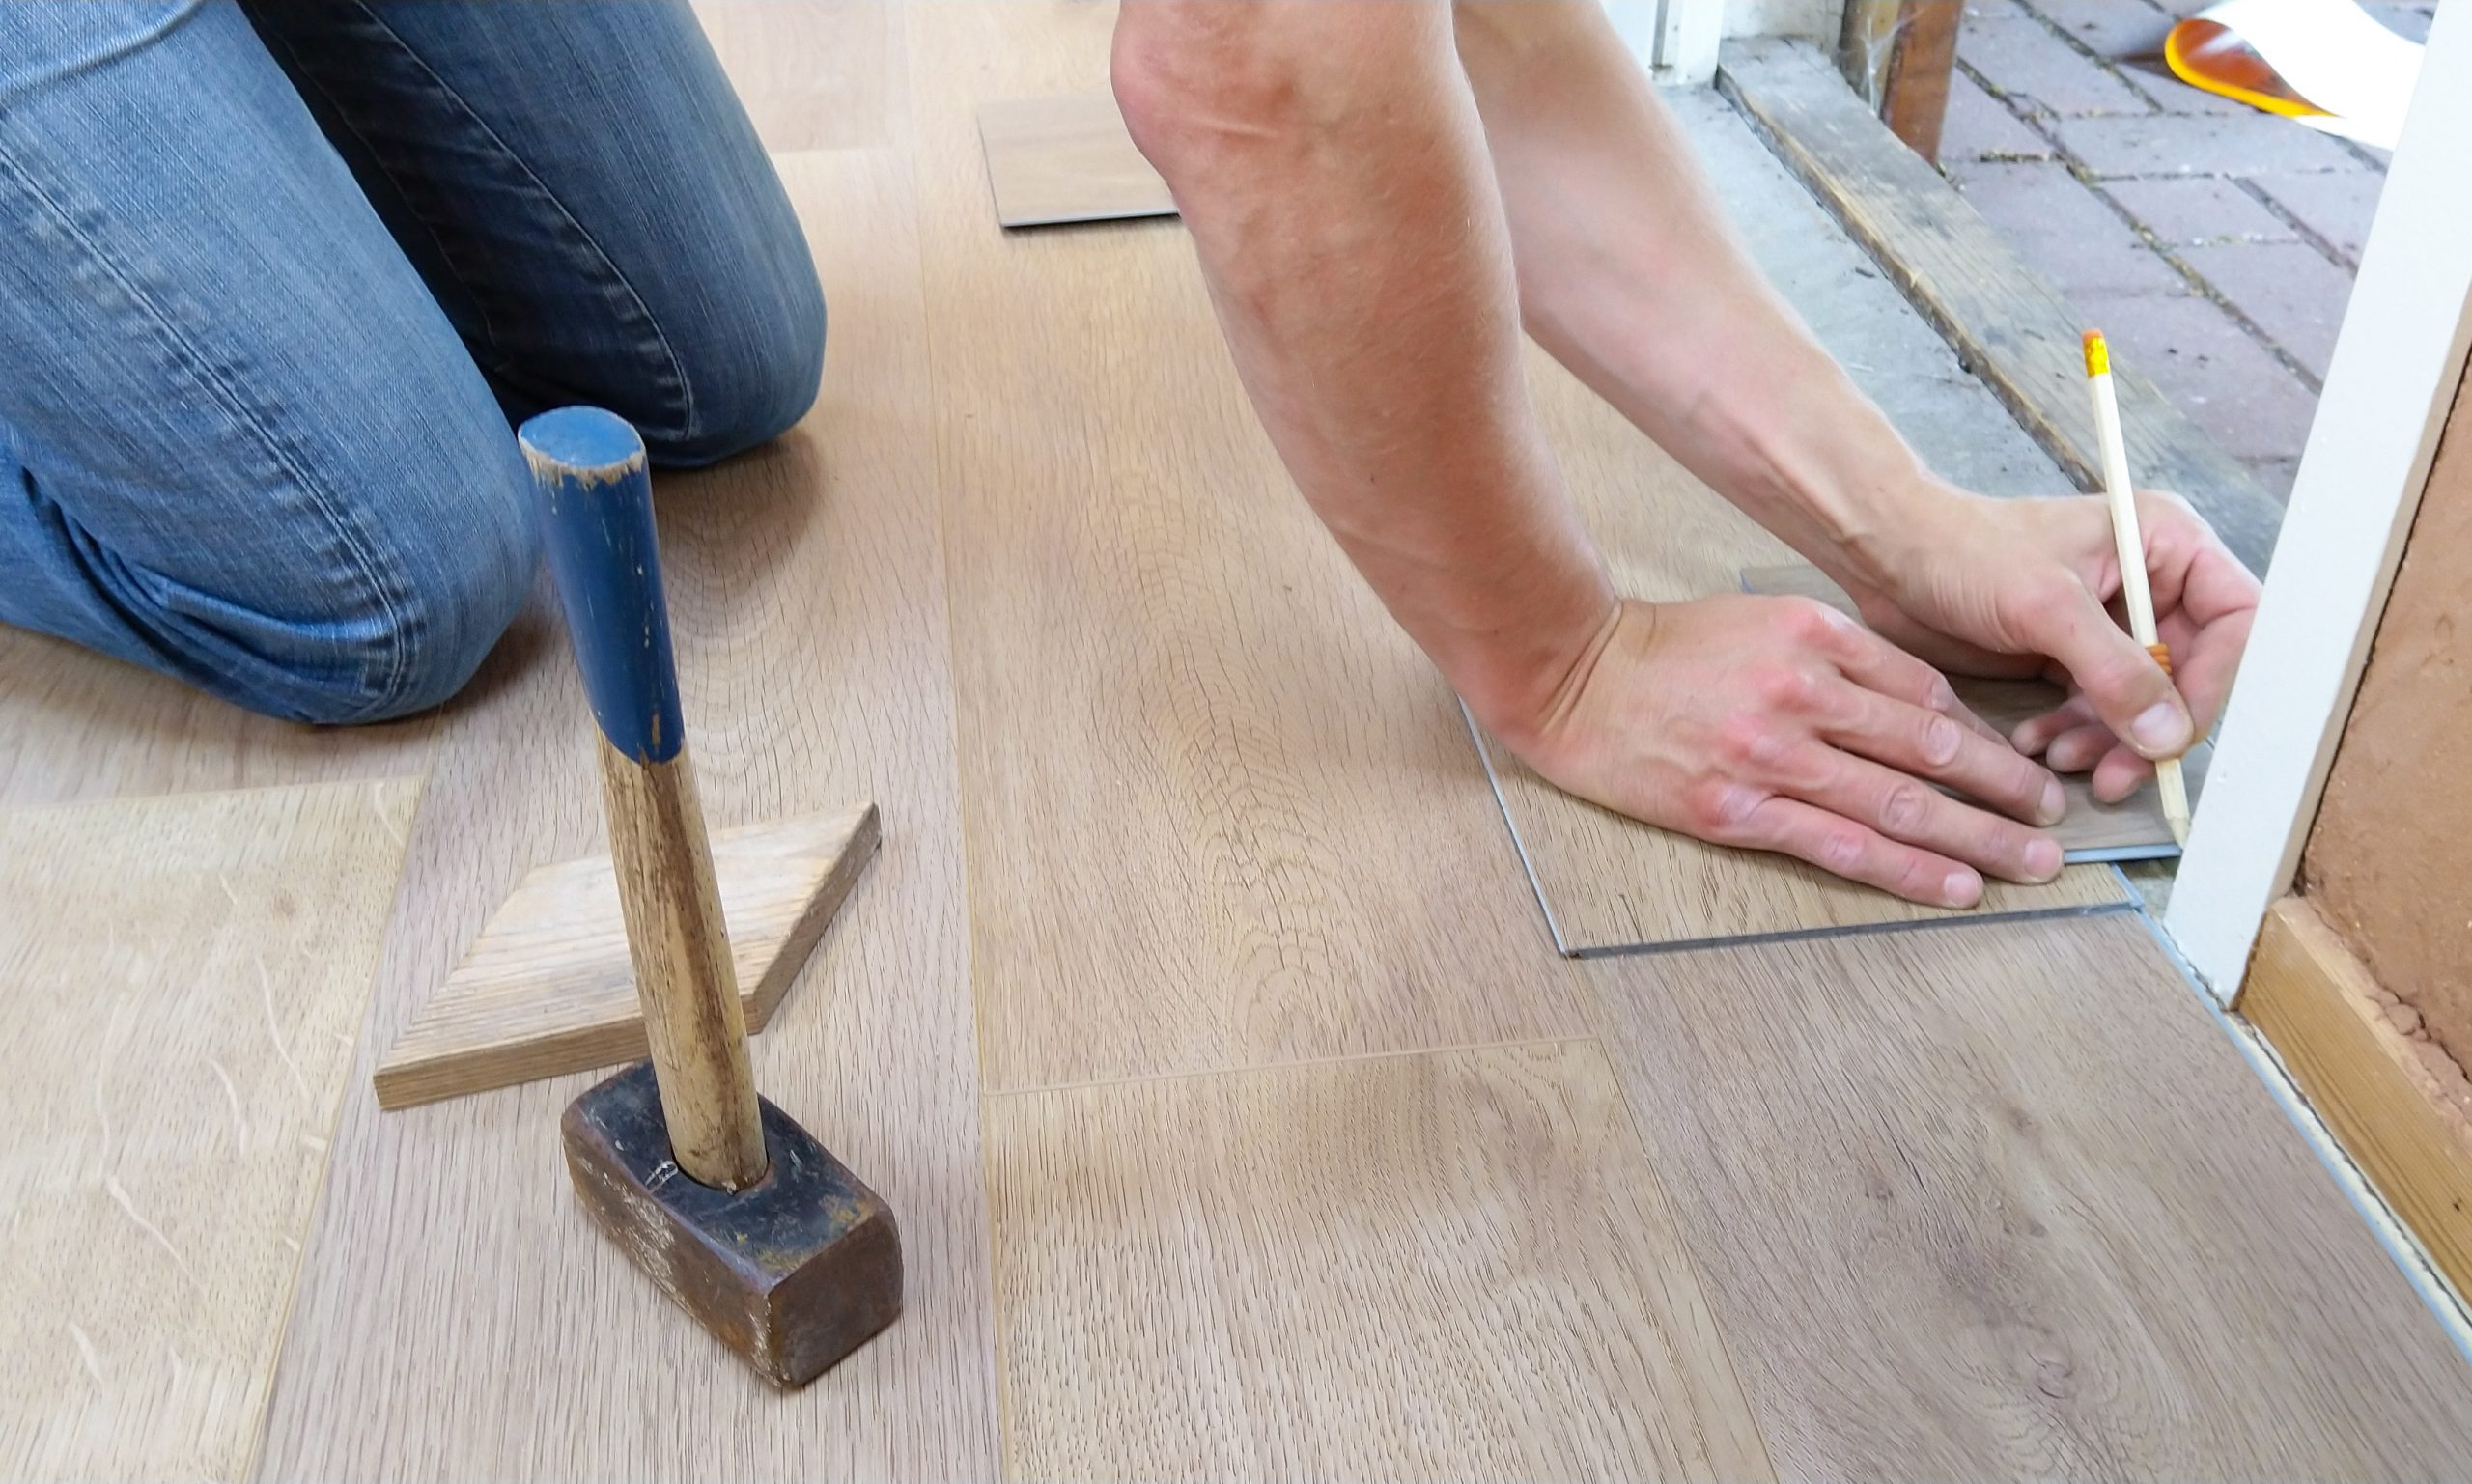 Rénovation : la pose d'un parquet